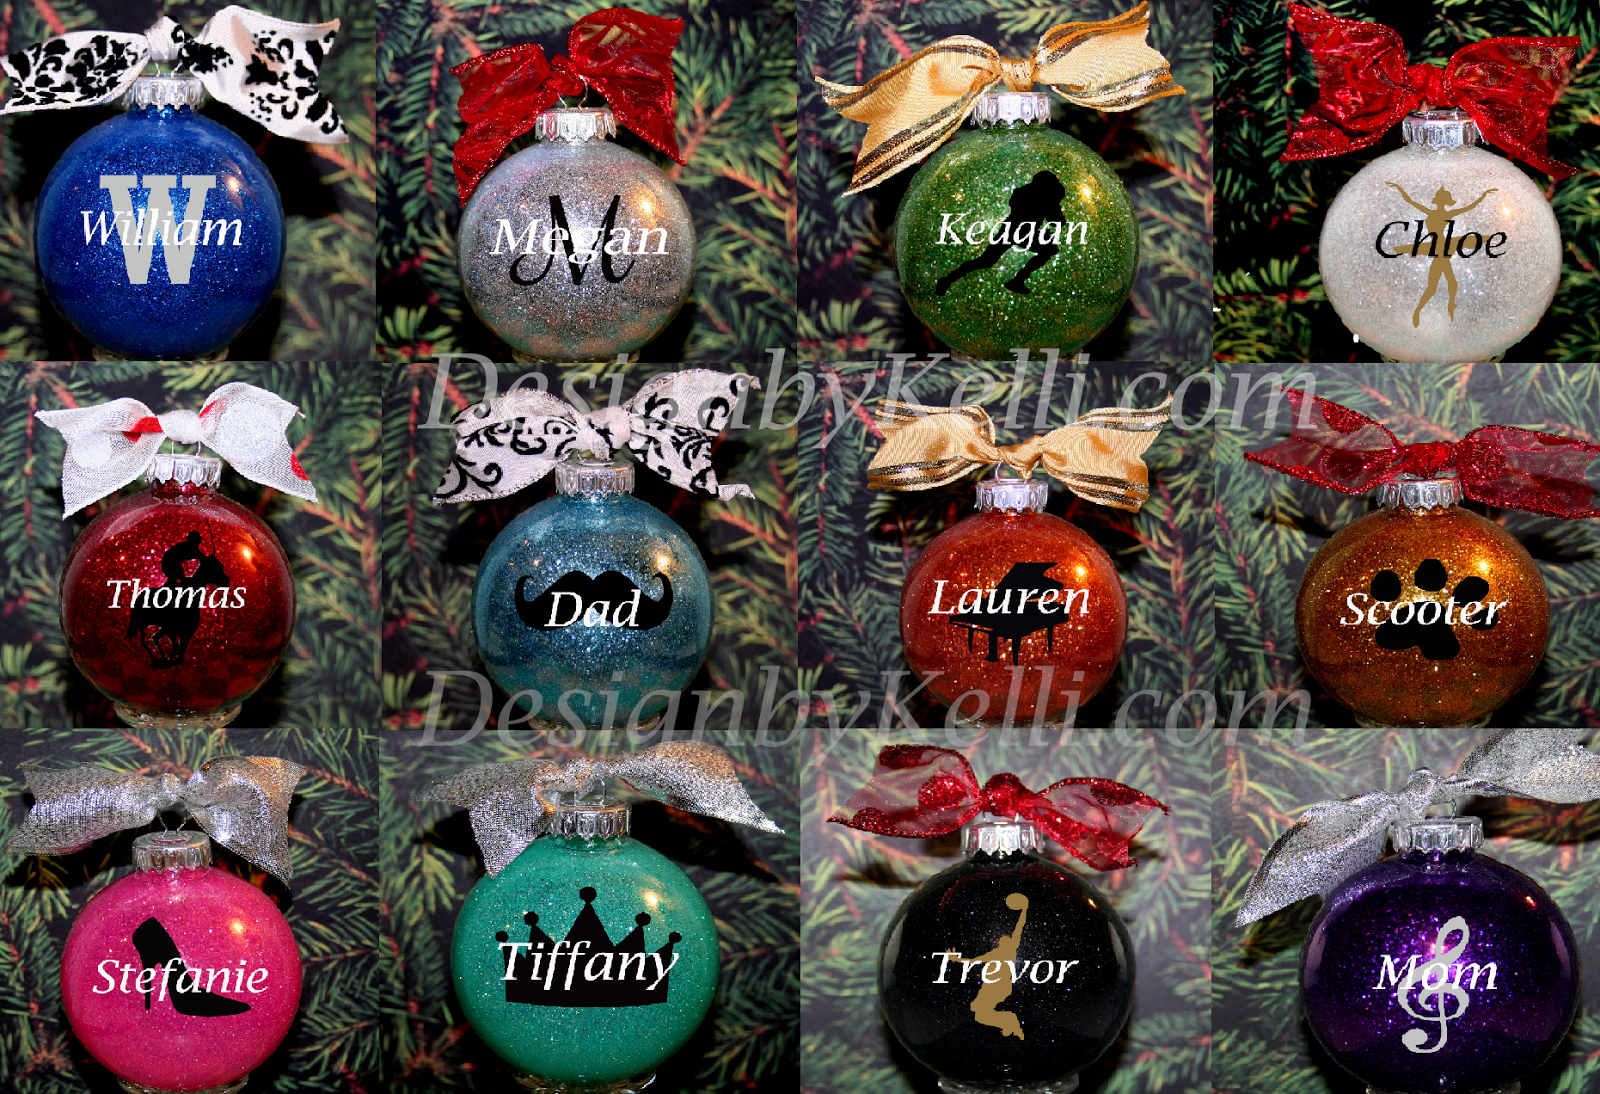 Personalizable ornaments - Updated Christmas Glass Block Vinyl Decals And Personalized Ornament Colors